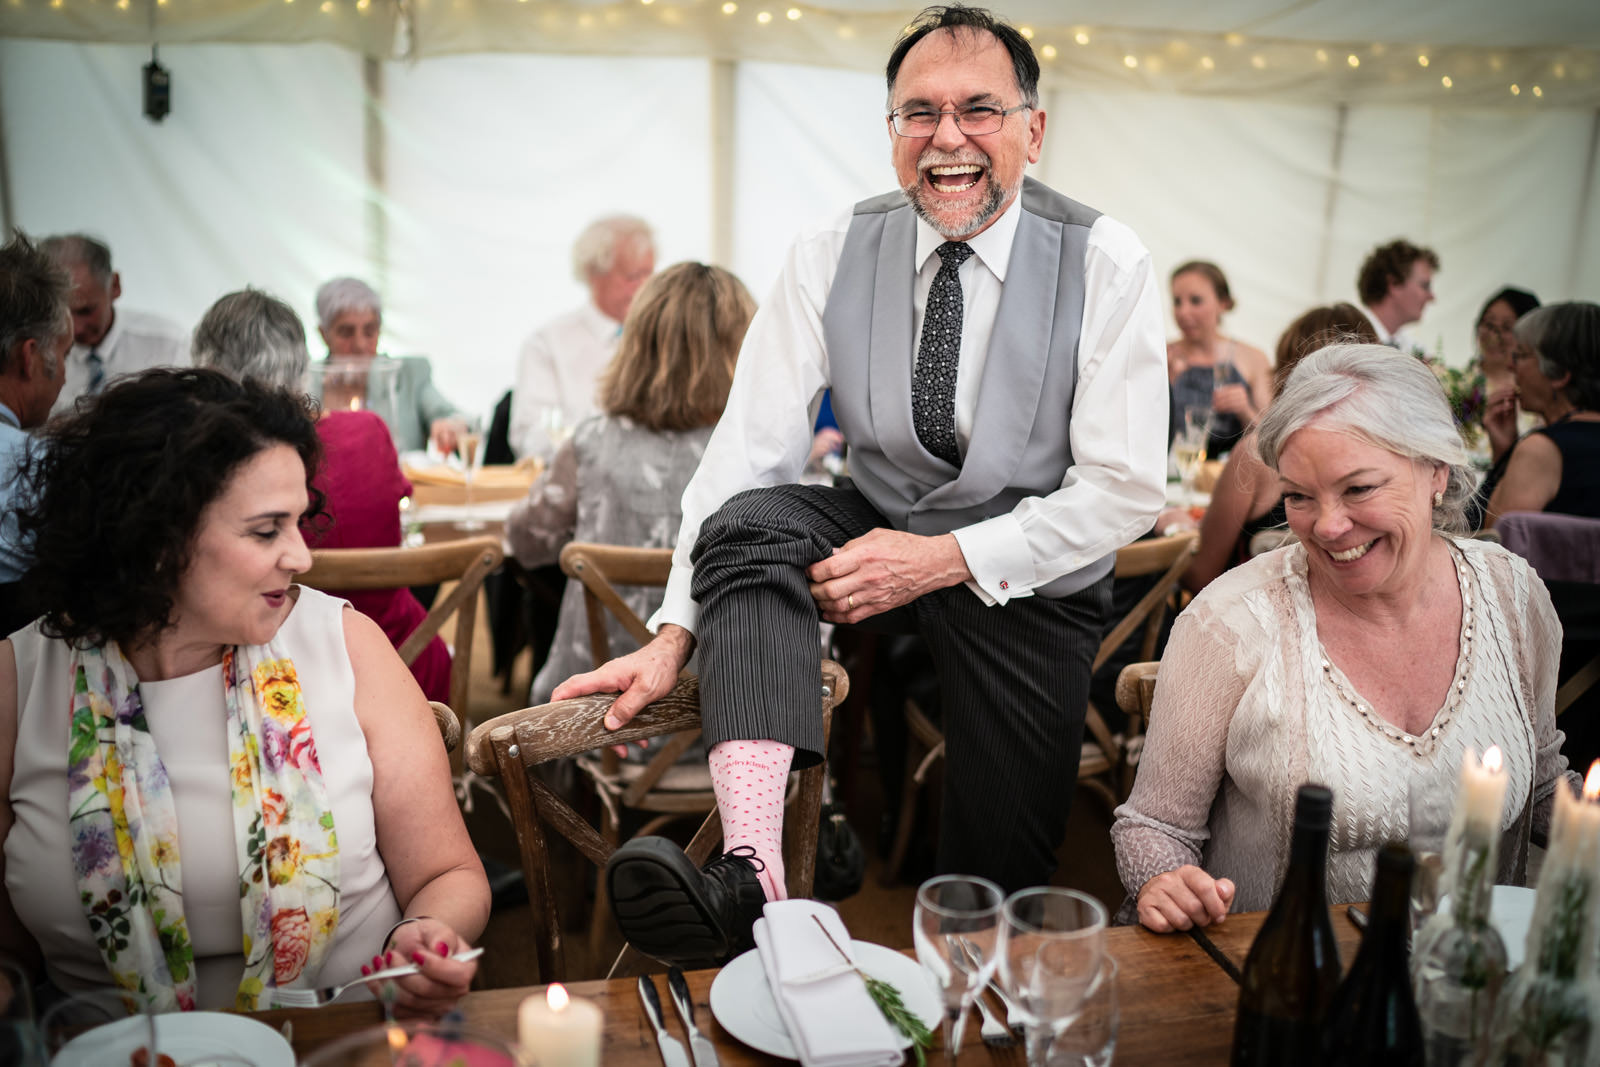 Father of the Bride shows off his socks in a Dorset Marquee